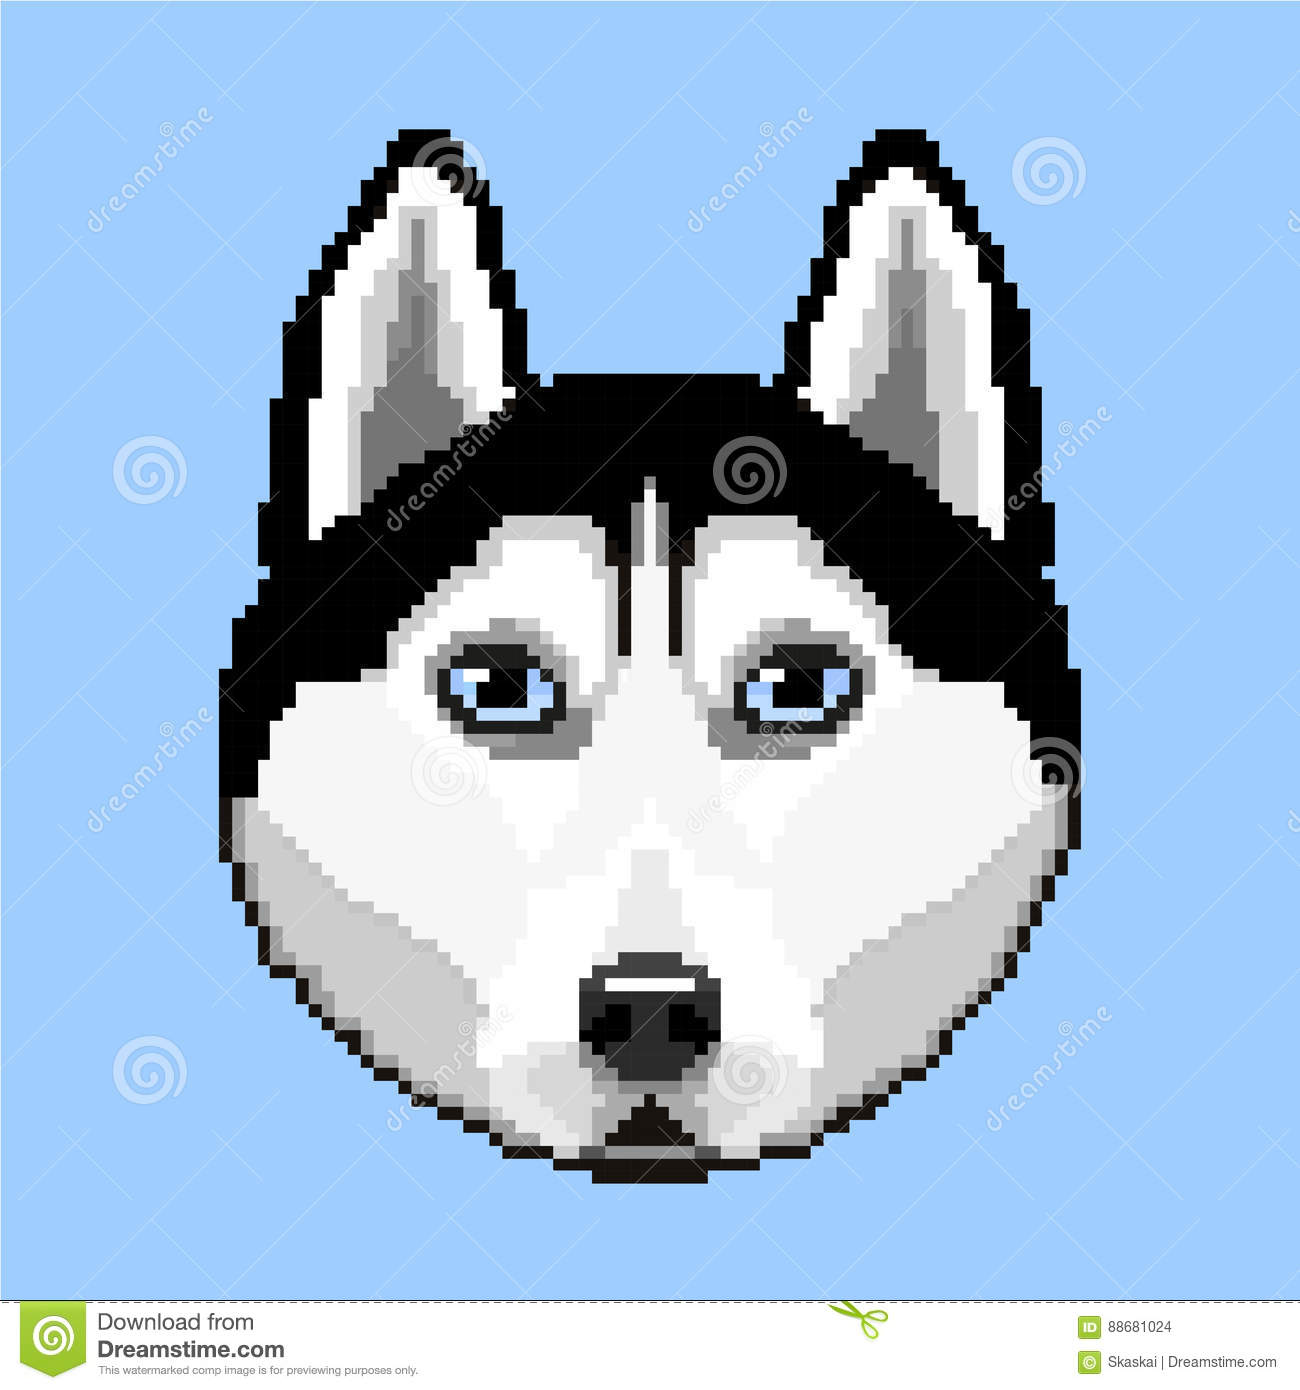 The Dog Of Breed Husky Stock Vector Illustration Of Pets